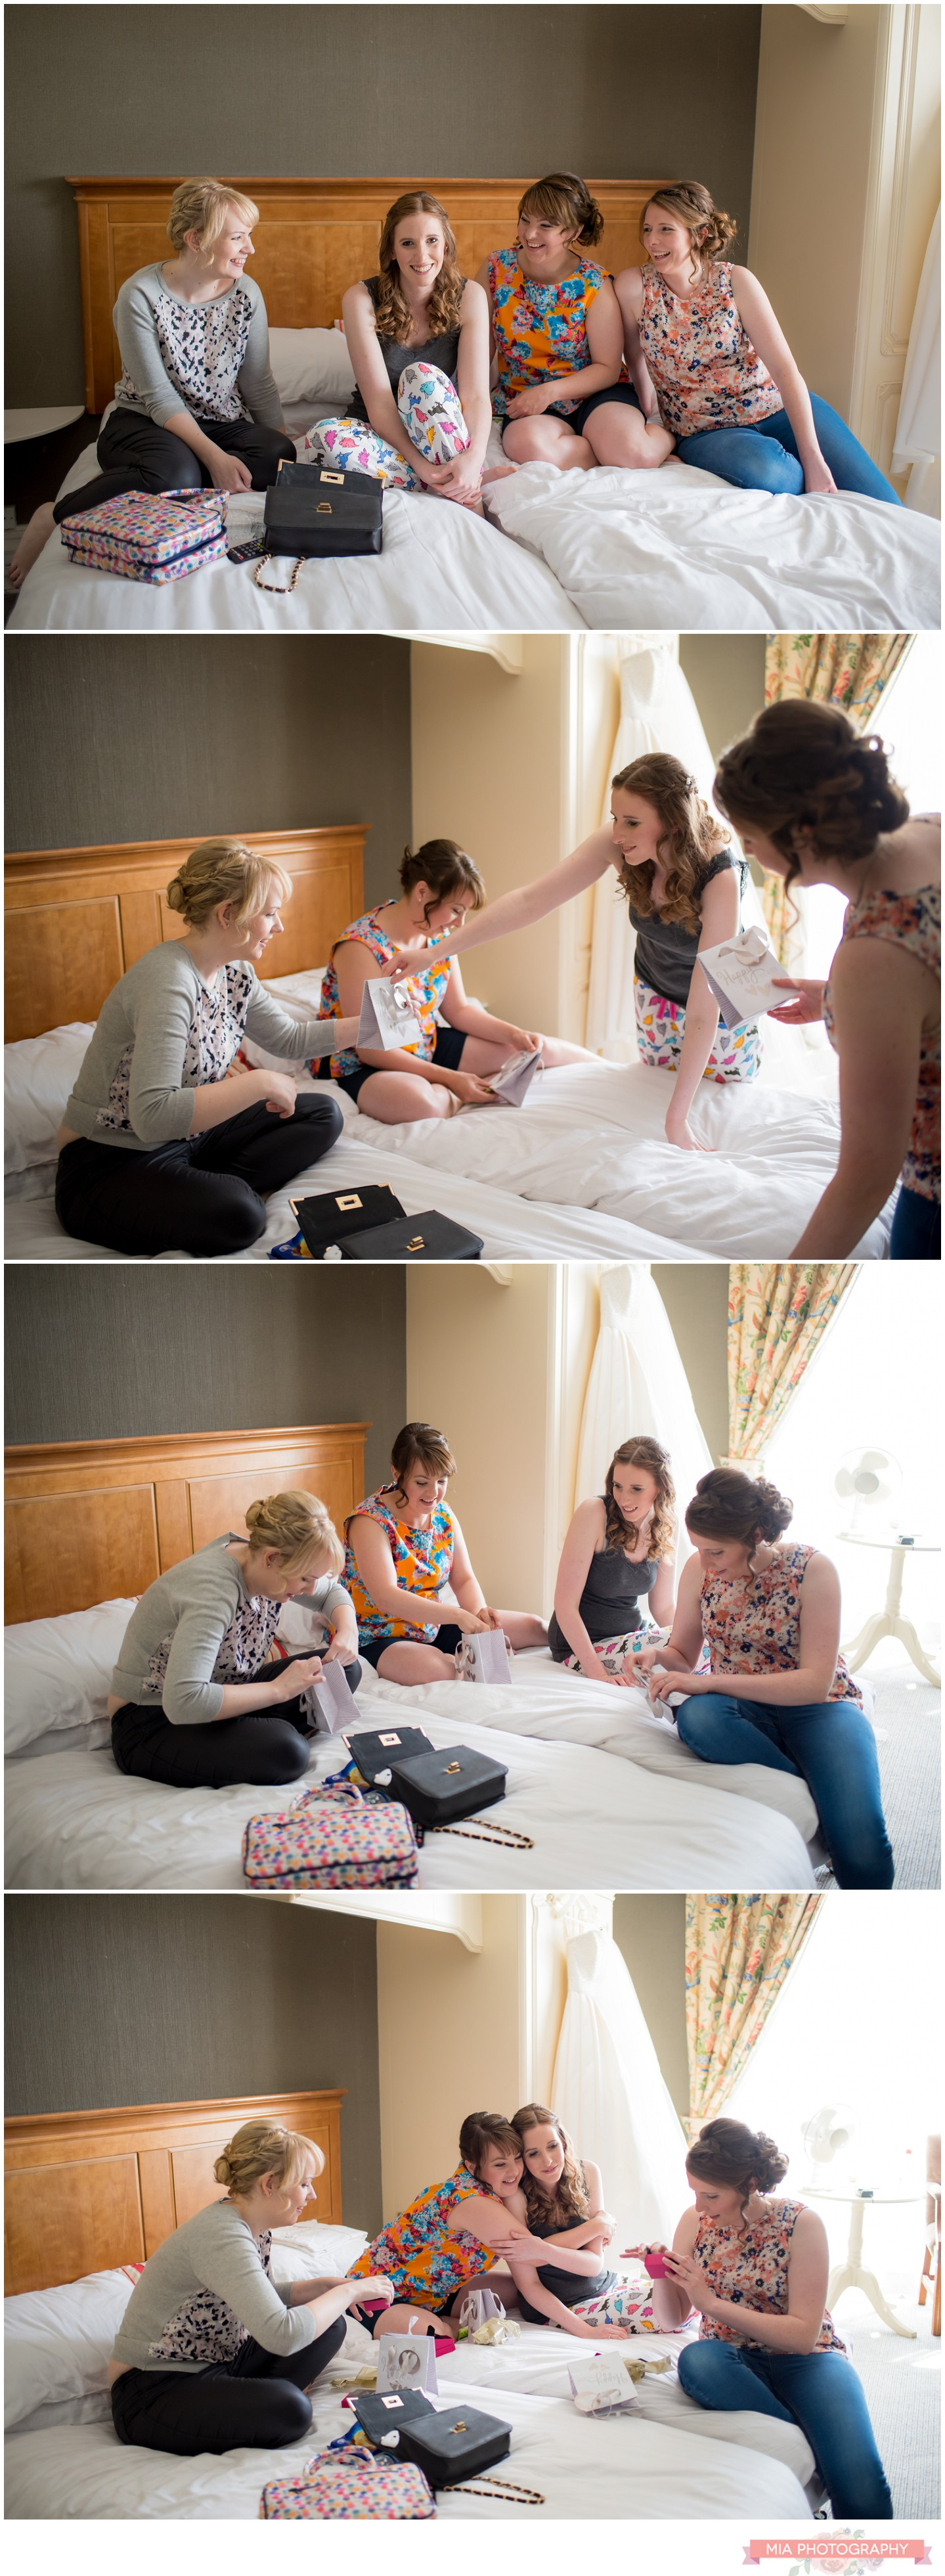 wedding photography at The royal bath hotel in bournemouth